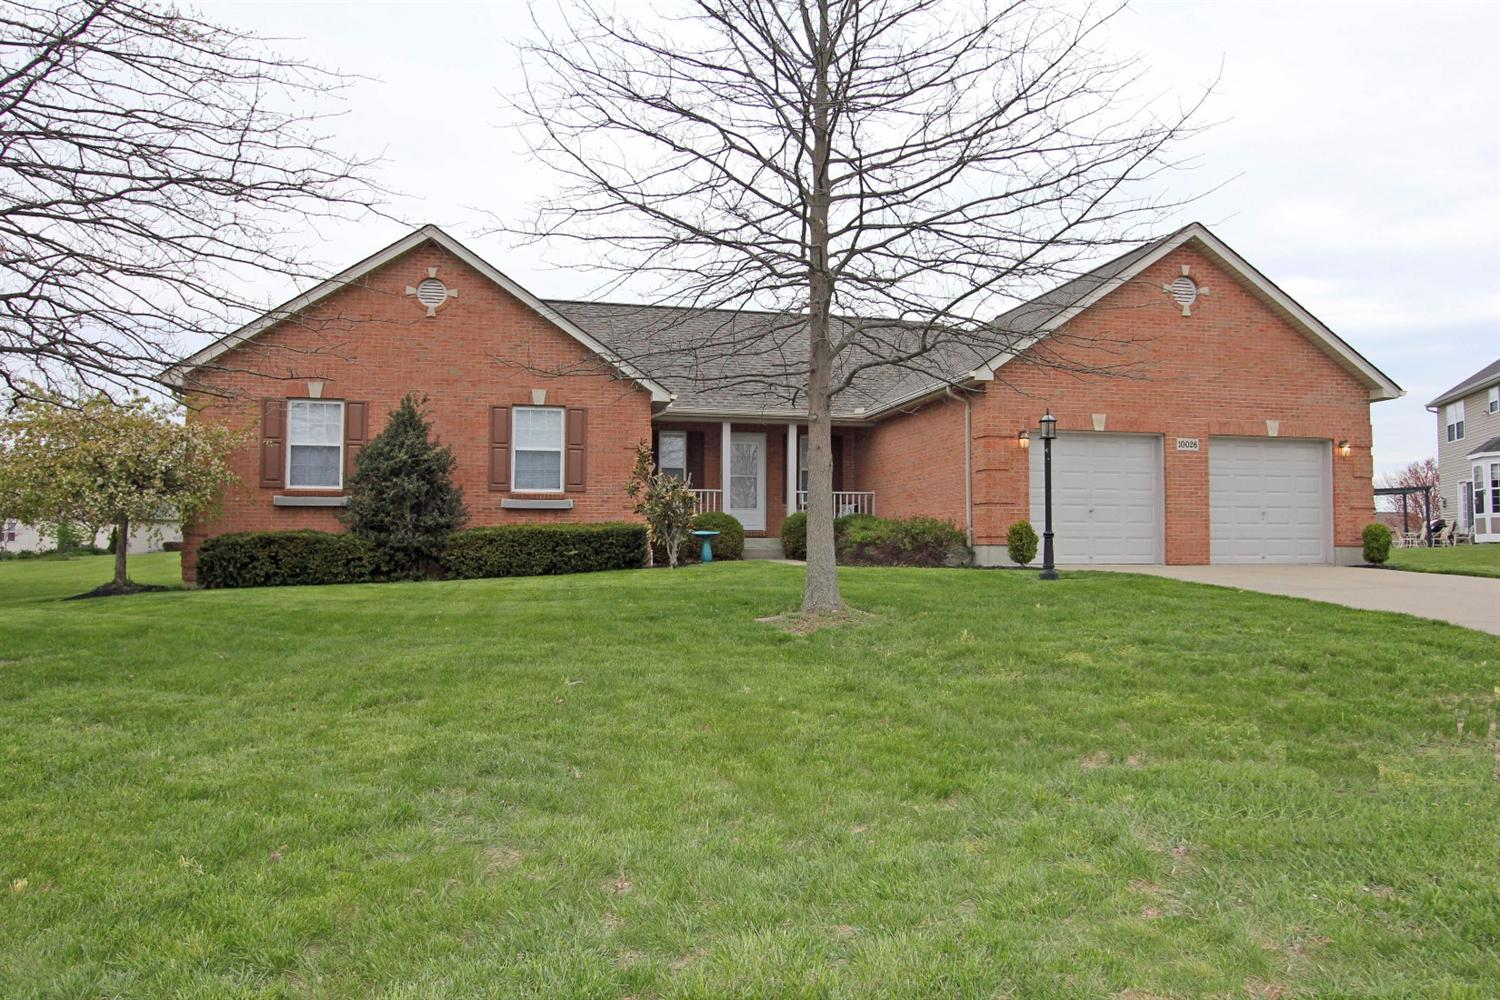 Photo 1 for 10026 Braxton Dr Union, KY 41091